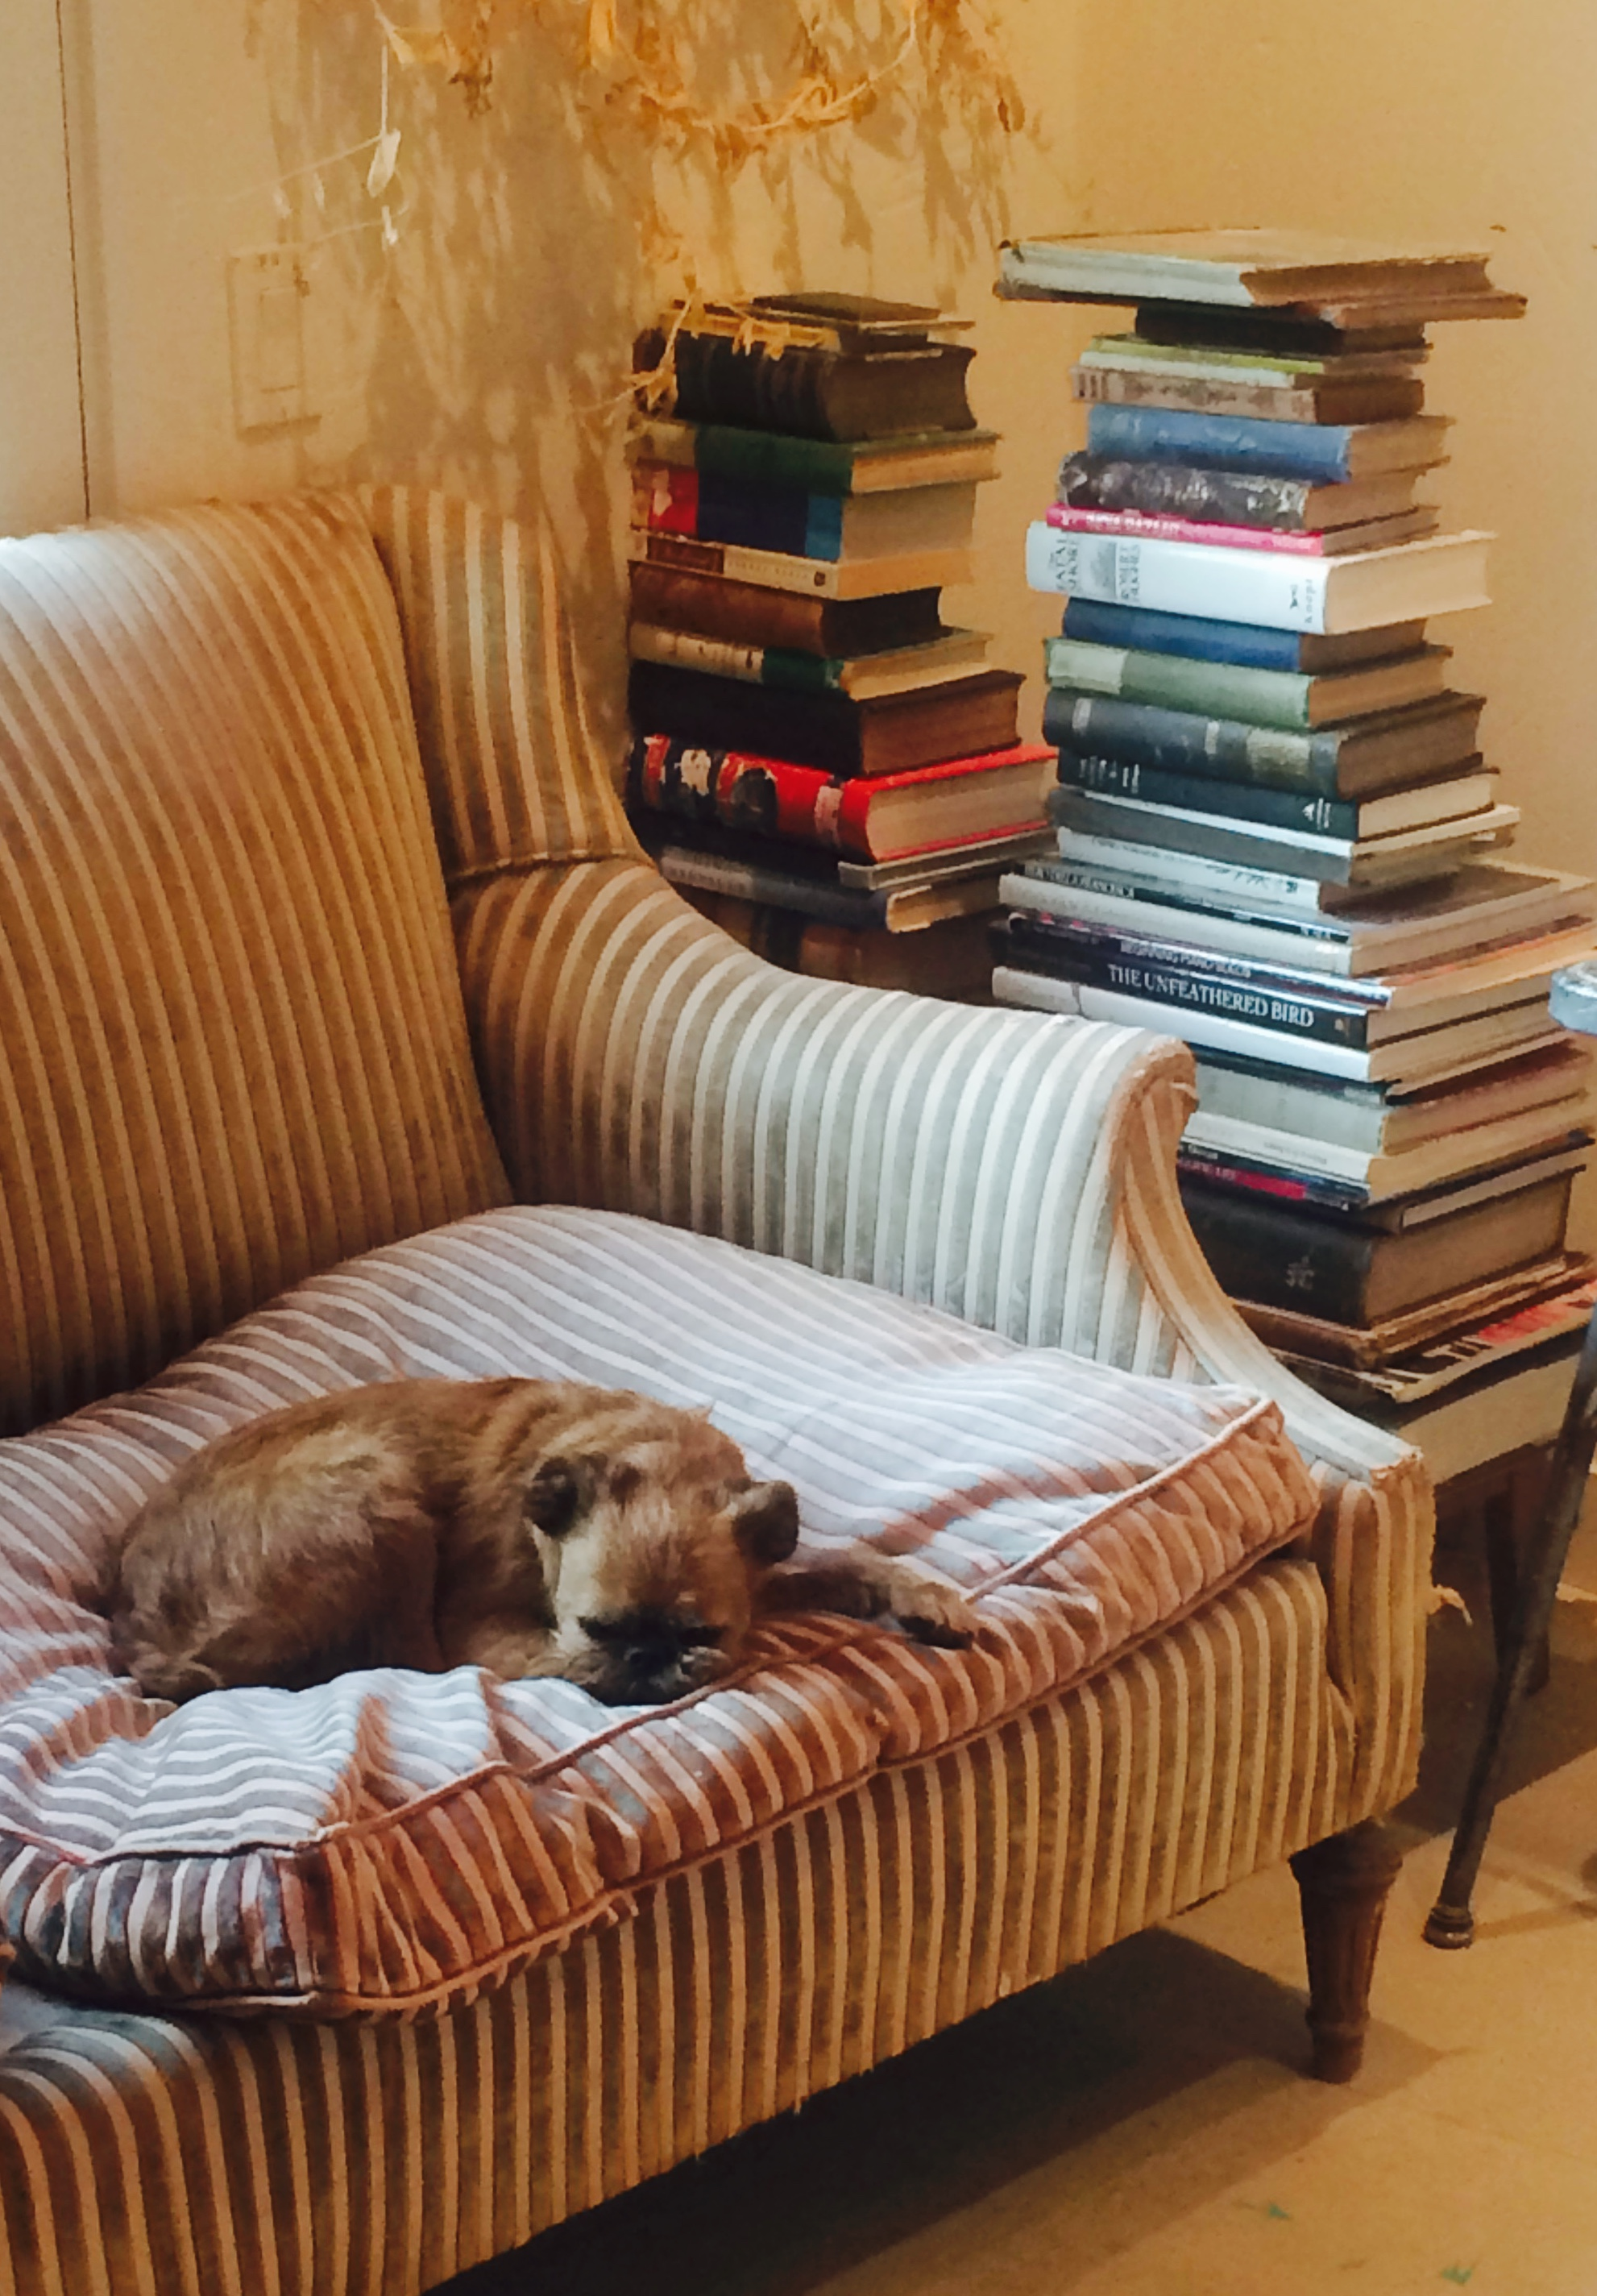 Every studio needs a mascot, an old, comfortable couch and piles of stacked books.